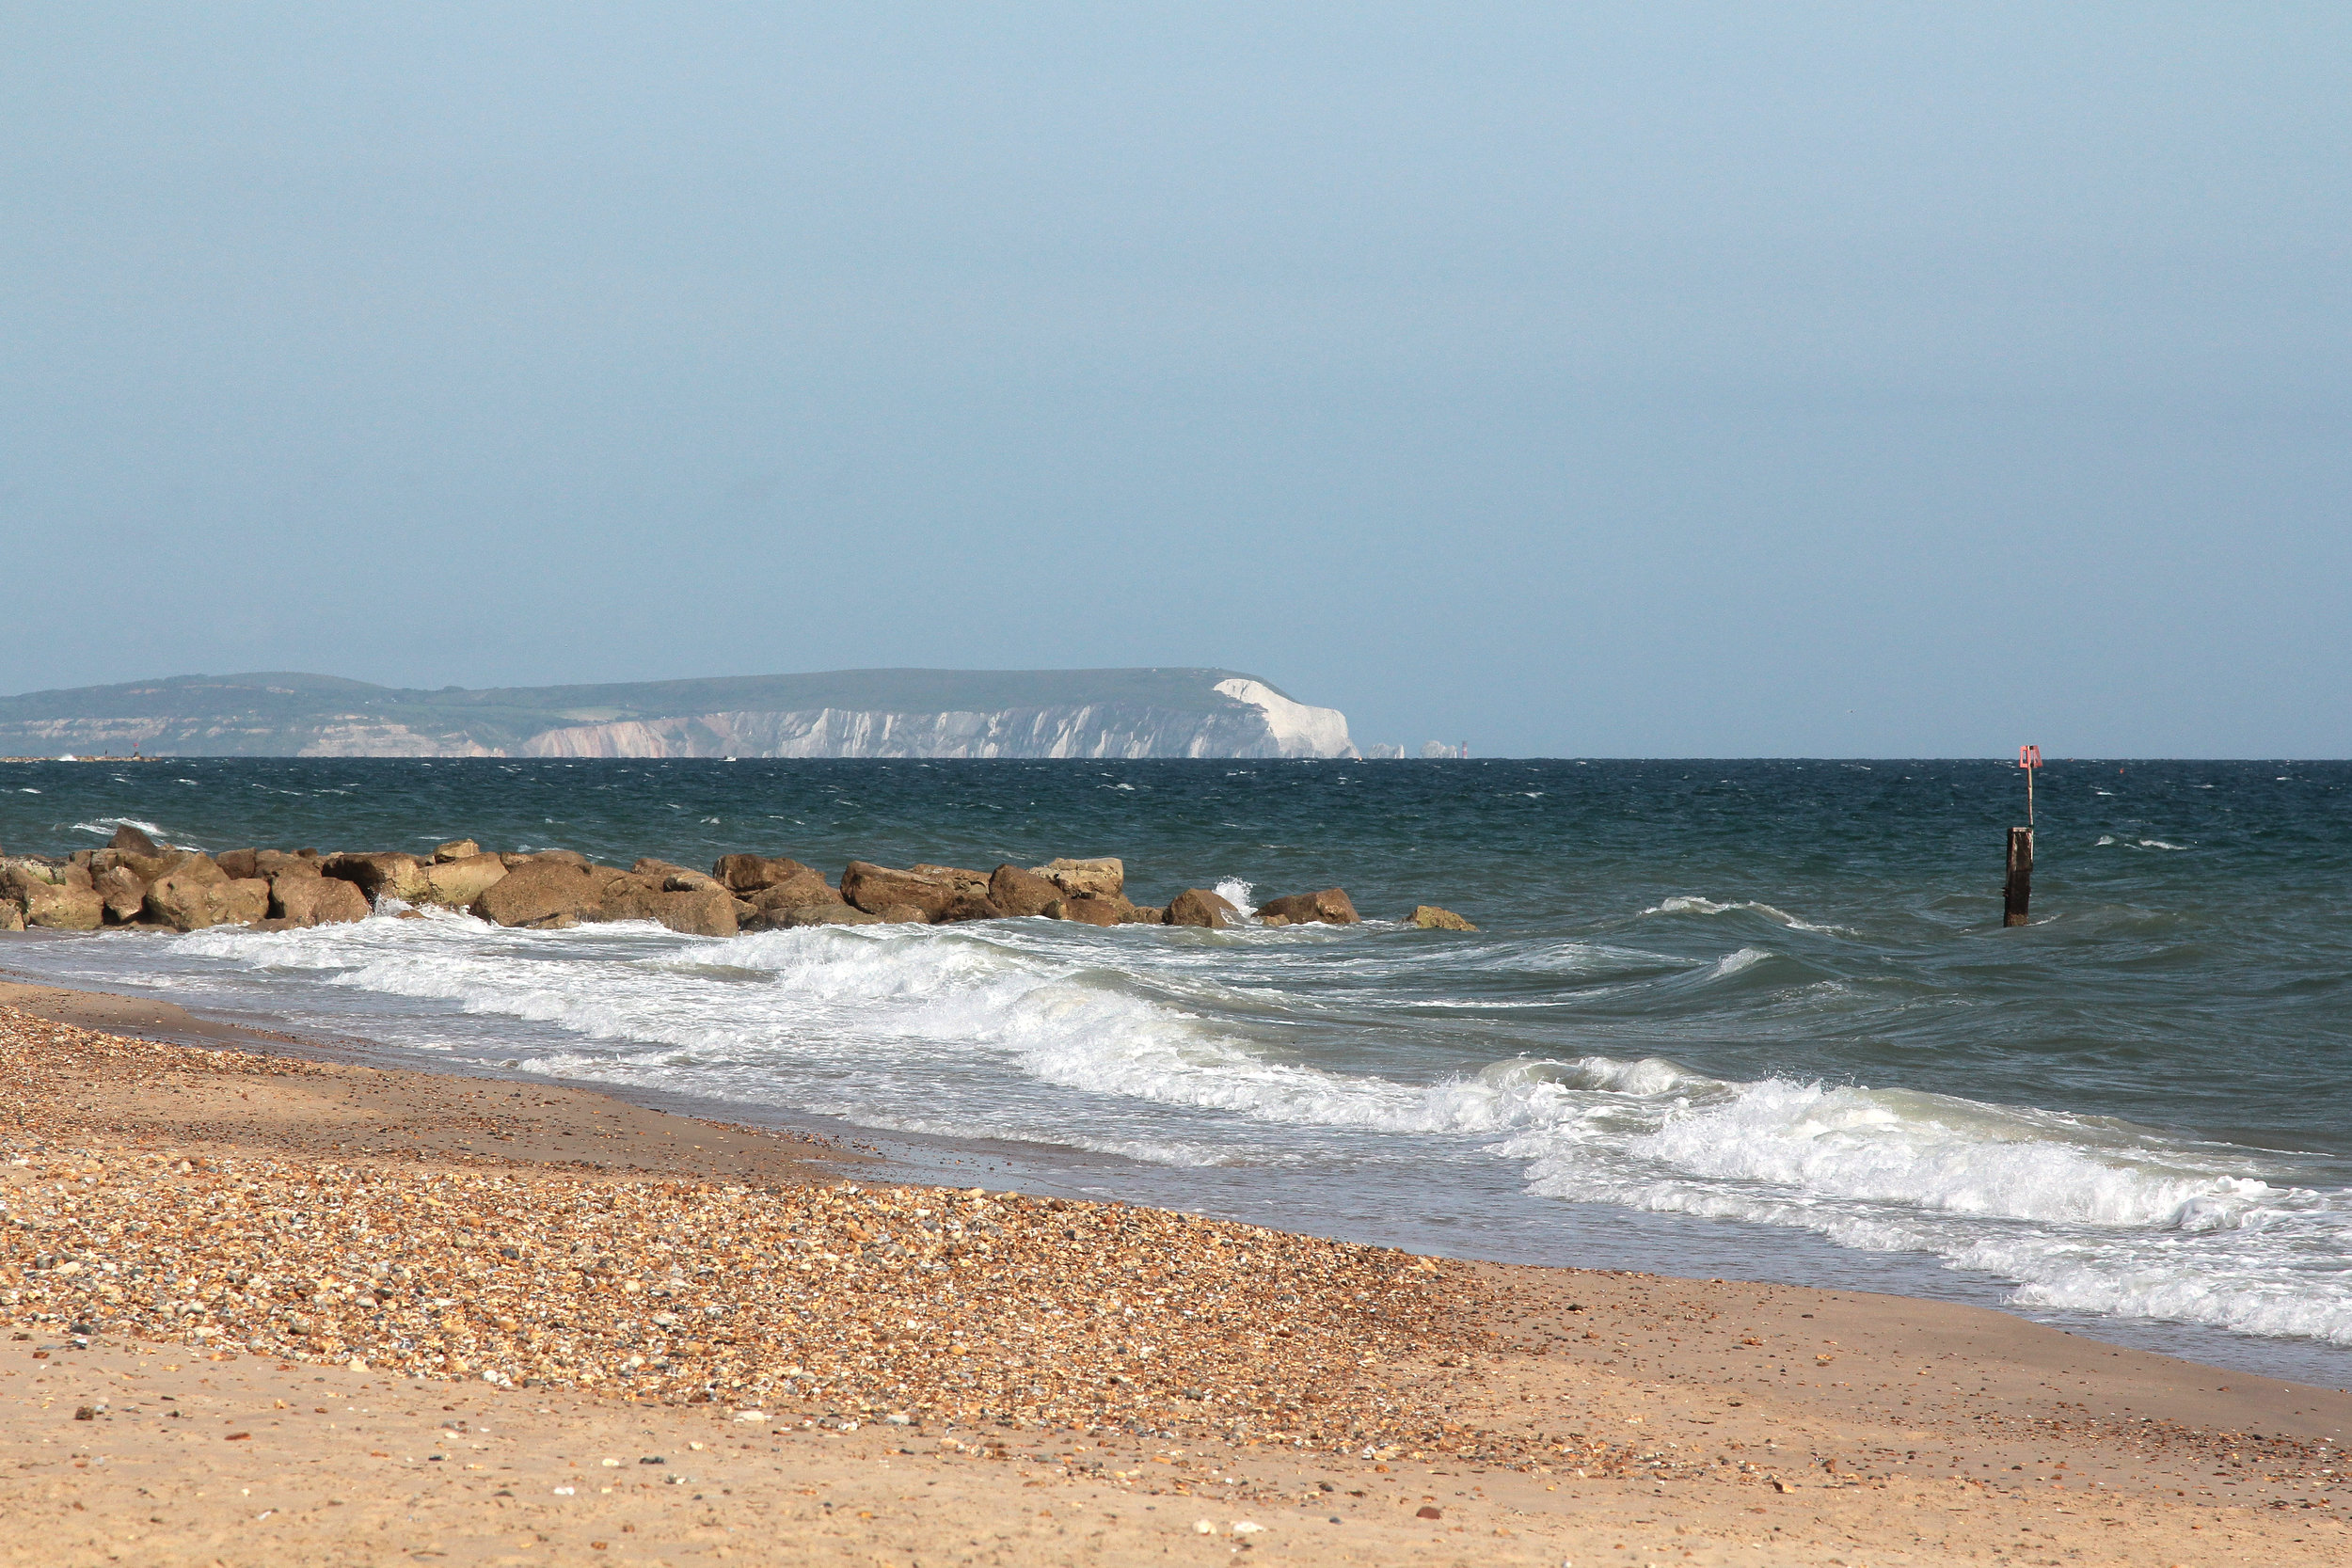 BreakPoint 'Marram' img22 -  Local View of coast with Isle of Wight (Polar Bear and Needles) beyond.jpg